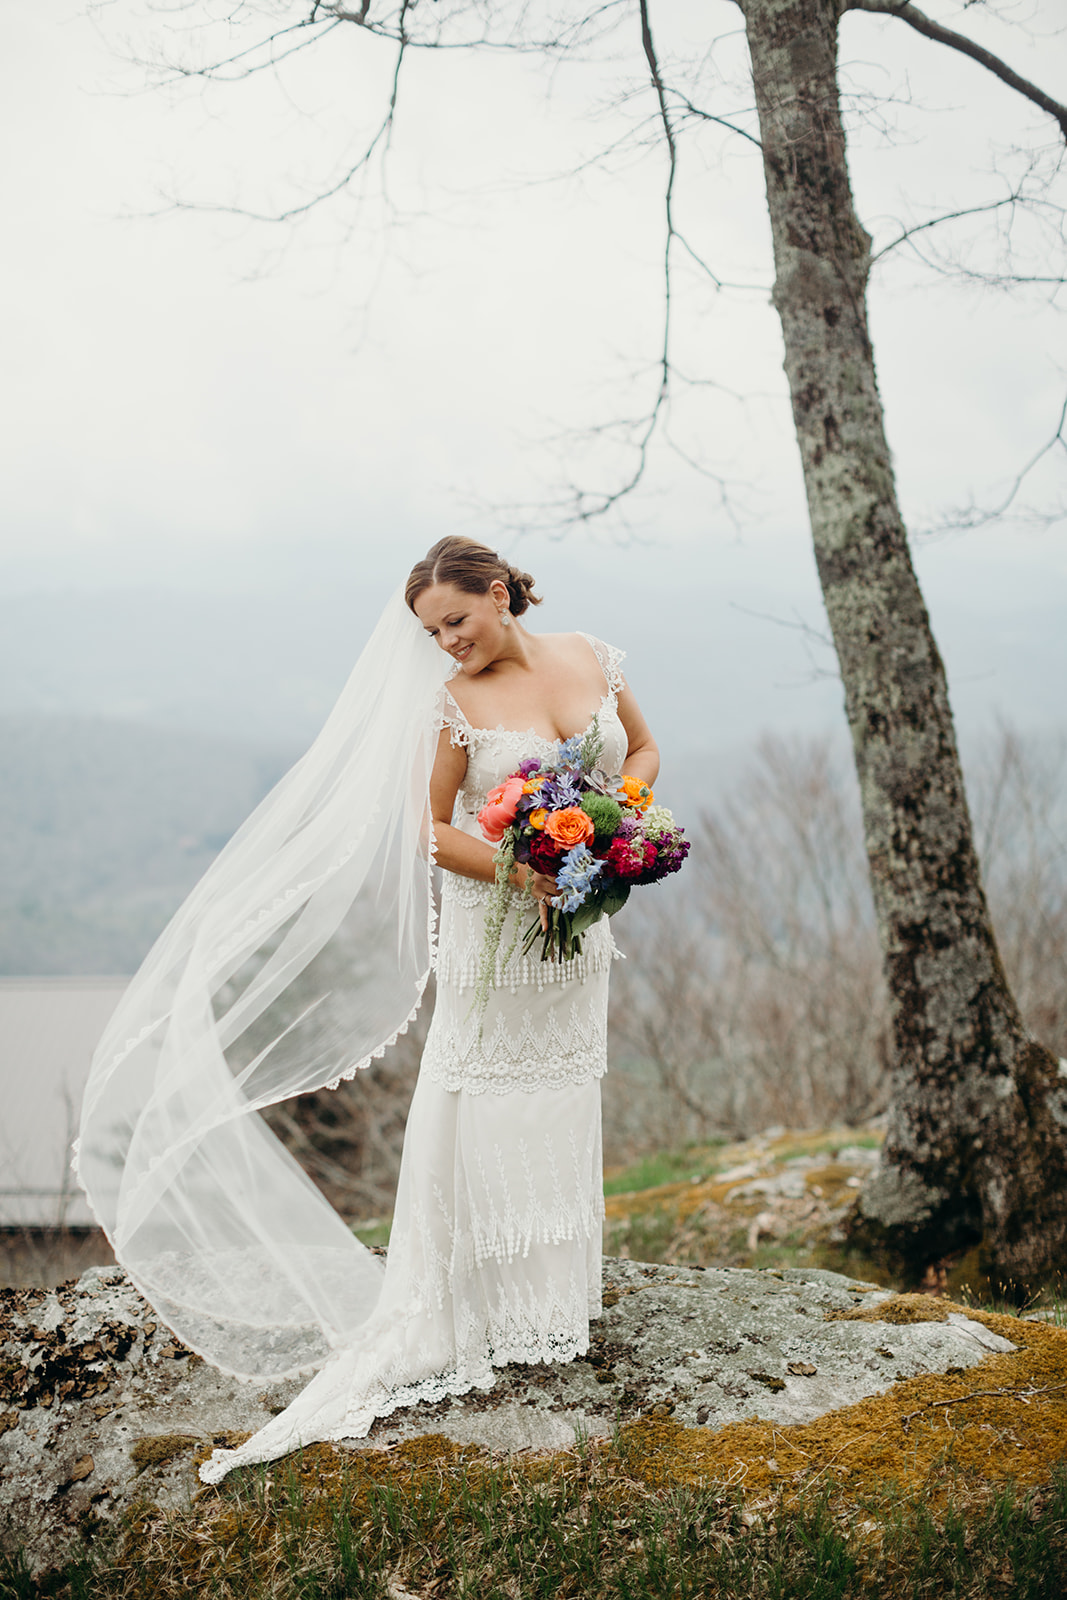 Colleen | Overlook Barn, NC | June 2018 |  Michelle Lyerly Photography